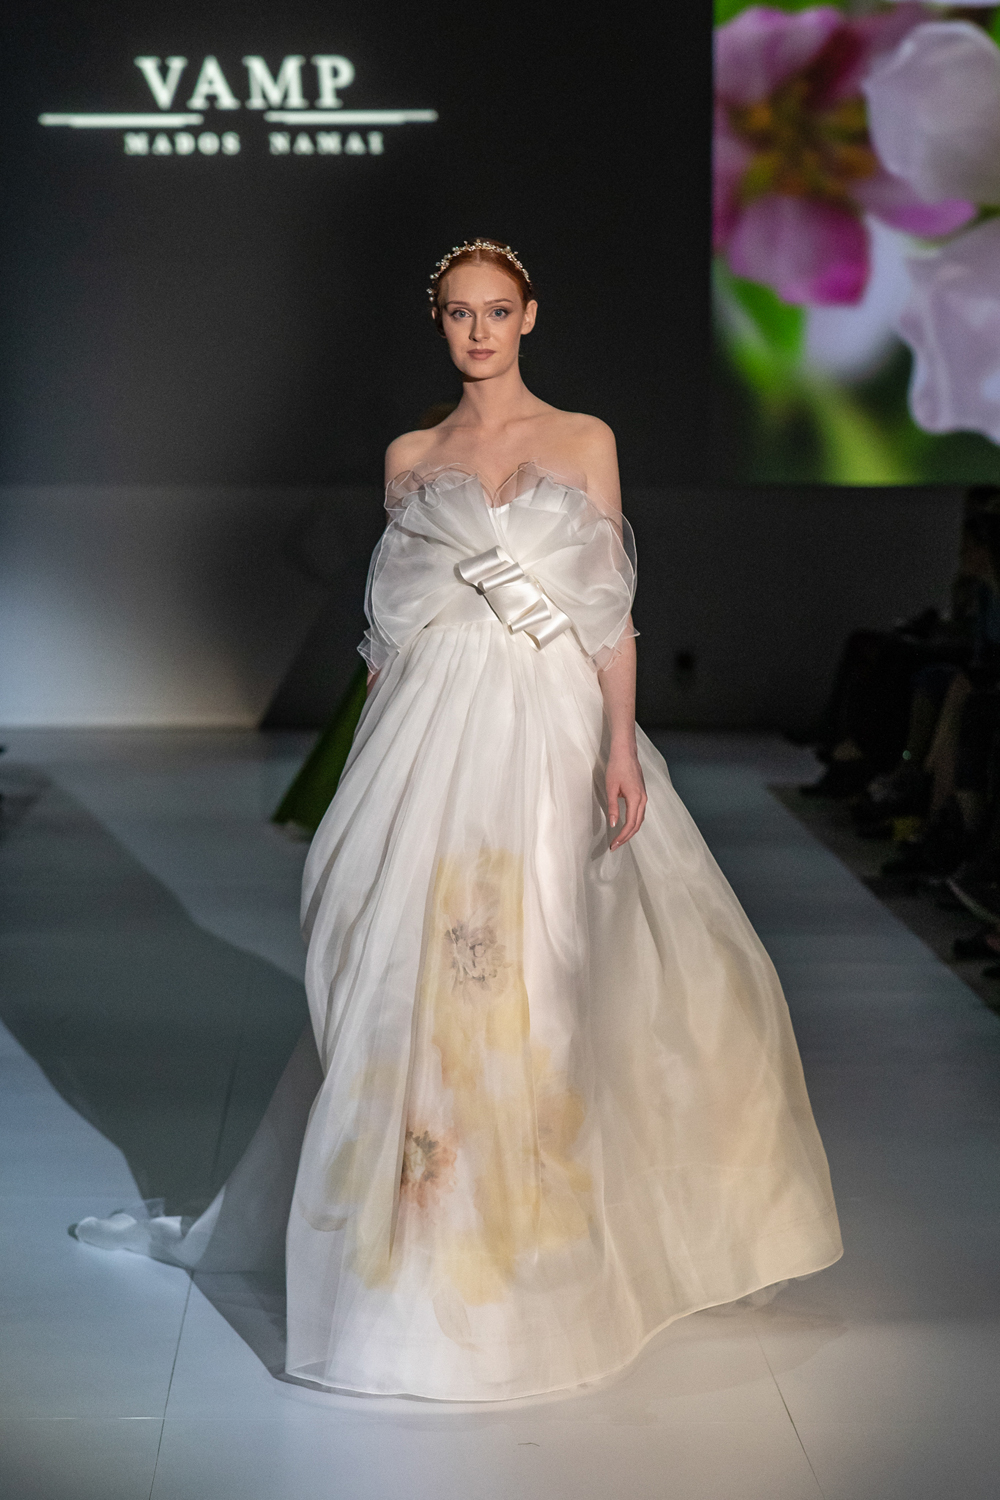 Wedding fashion show 2020 - 5